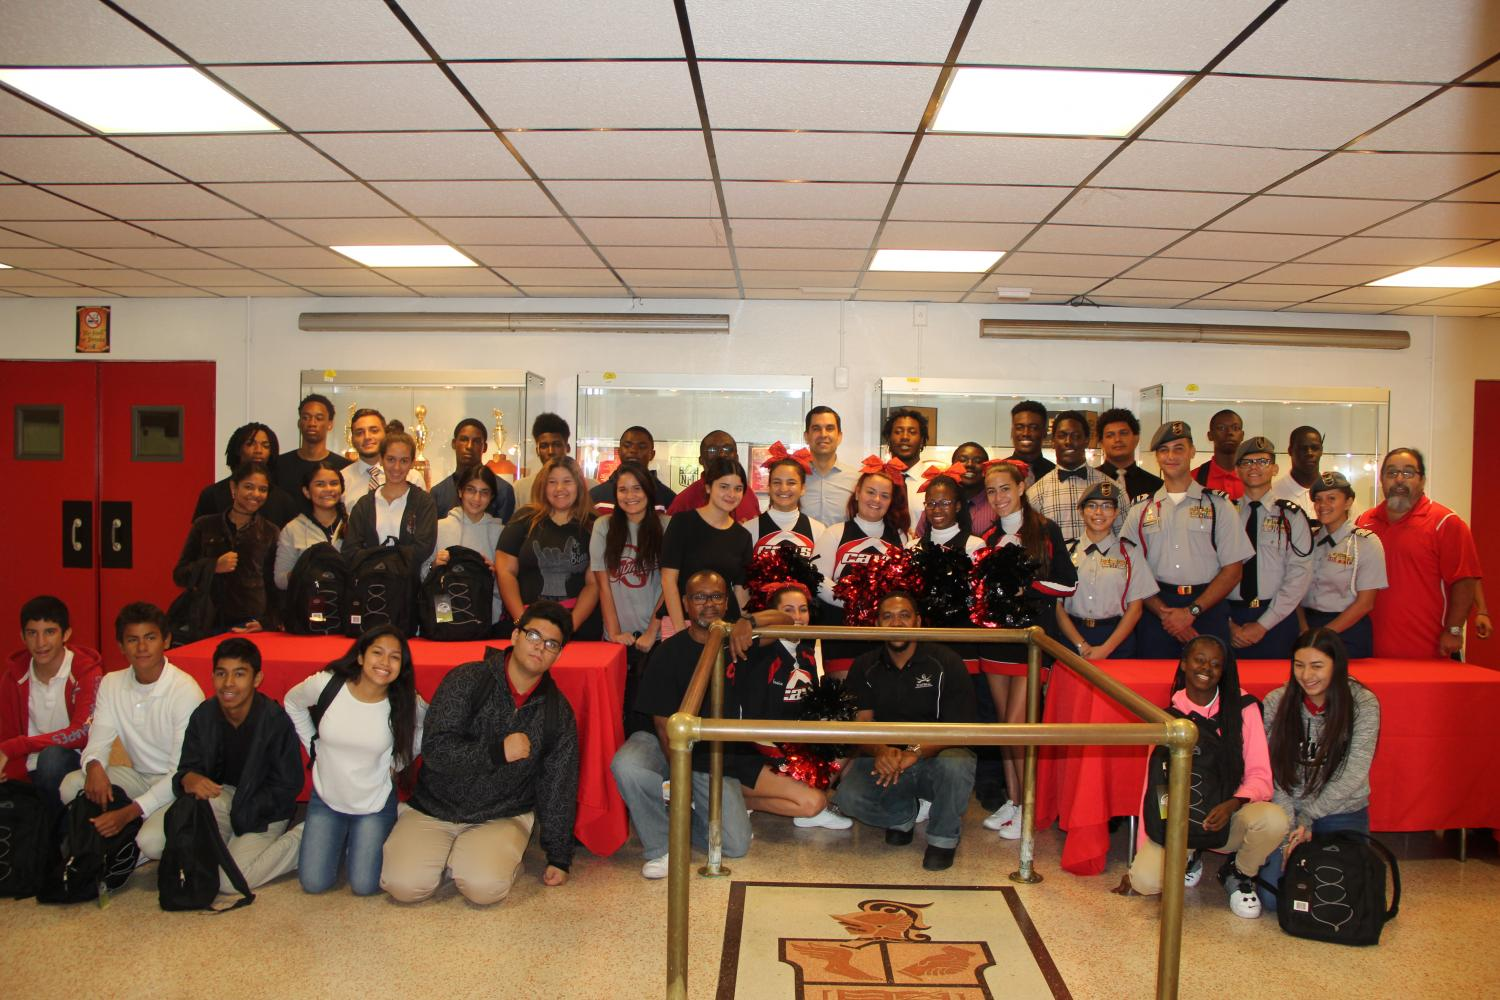 Gables+students+smile+for+a+picture+with+Commissioner+Lago+in+the+auditorium+lobby.